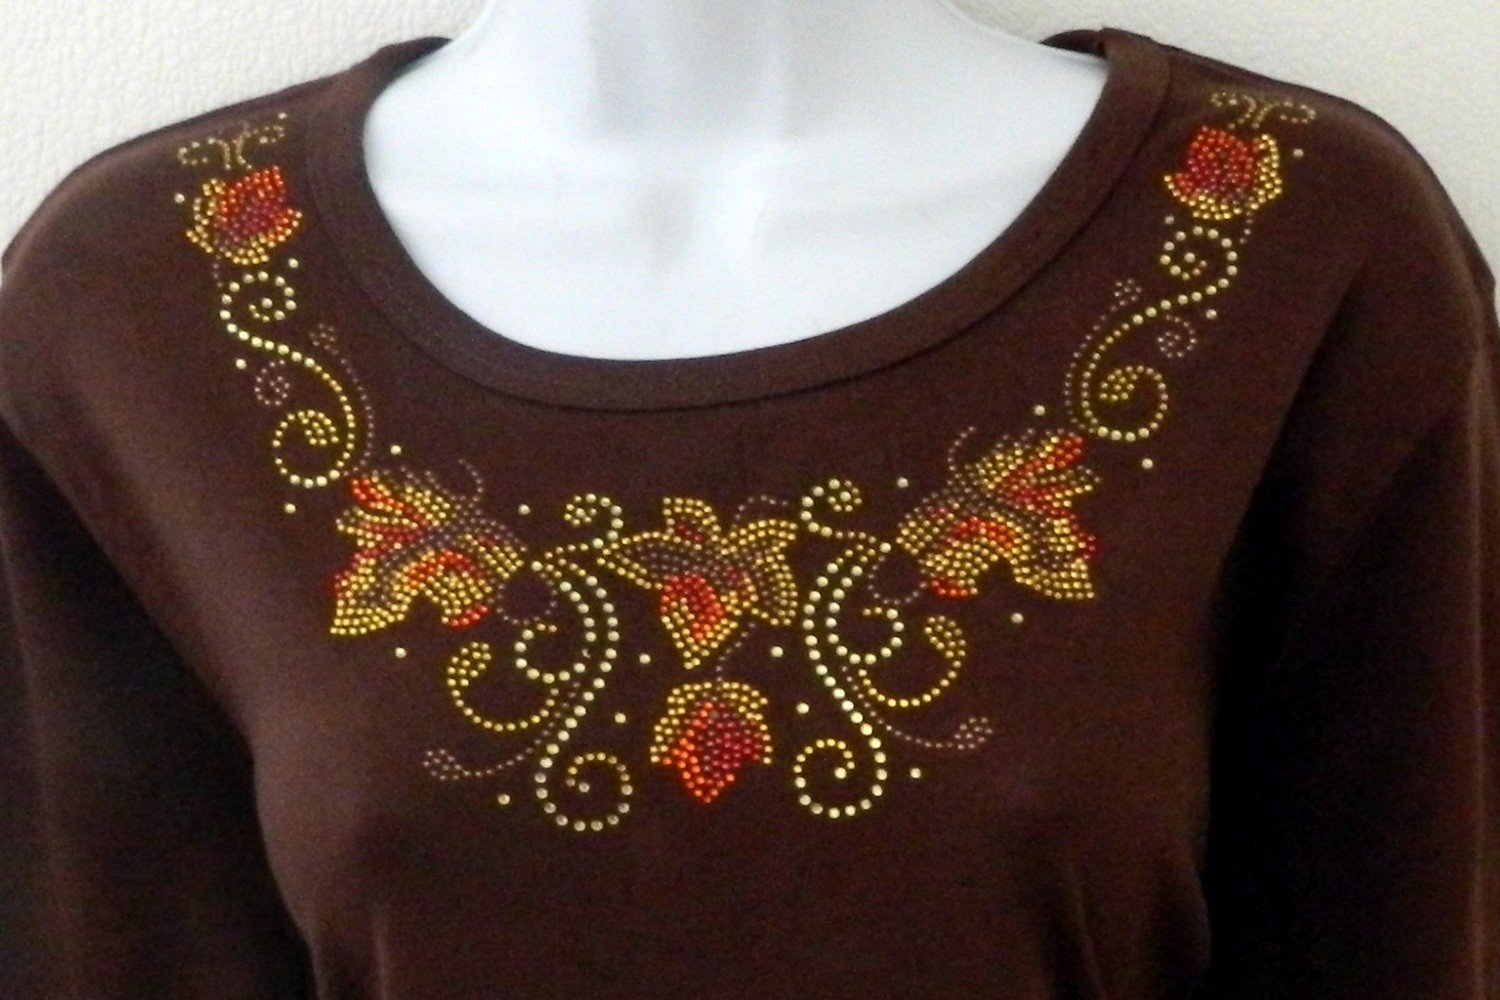 Autumn Leaves gold stones accents   w embellished sleeves